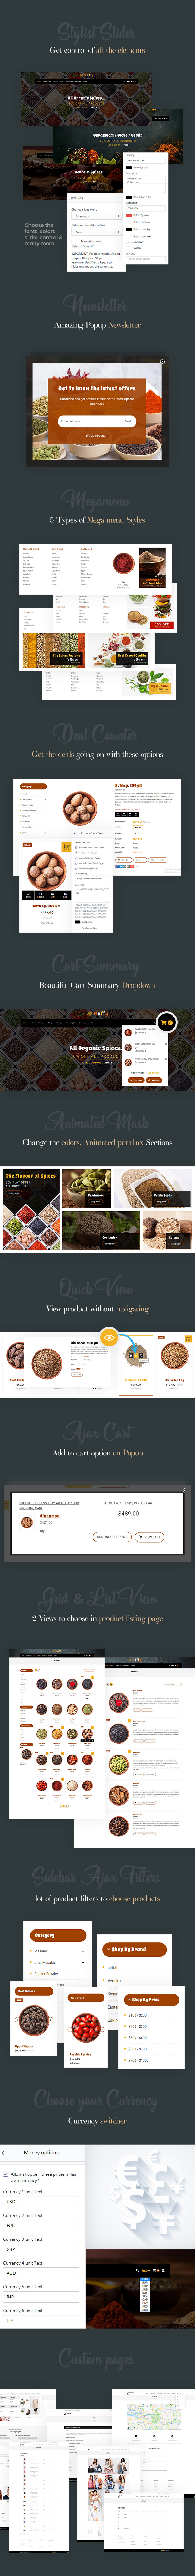 Best Free Shopify Theme For Mobile Spices Dry Fruits & Nuts Store Waffy Overview